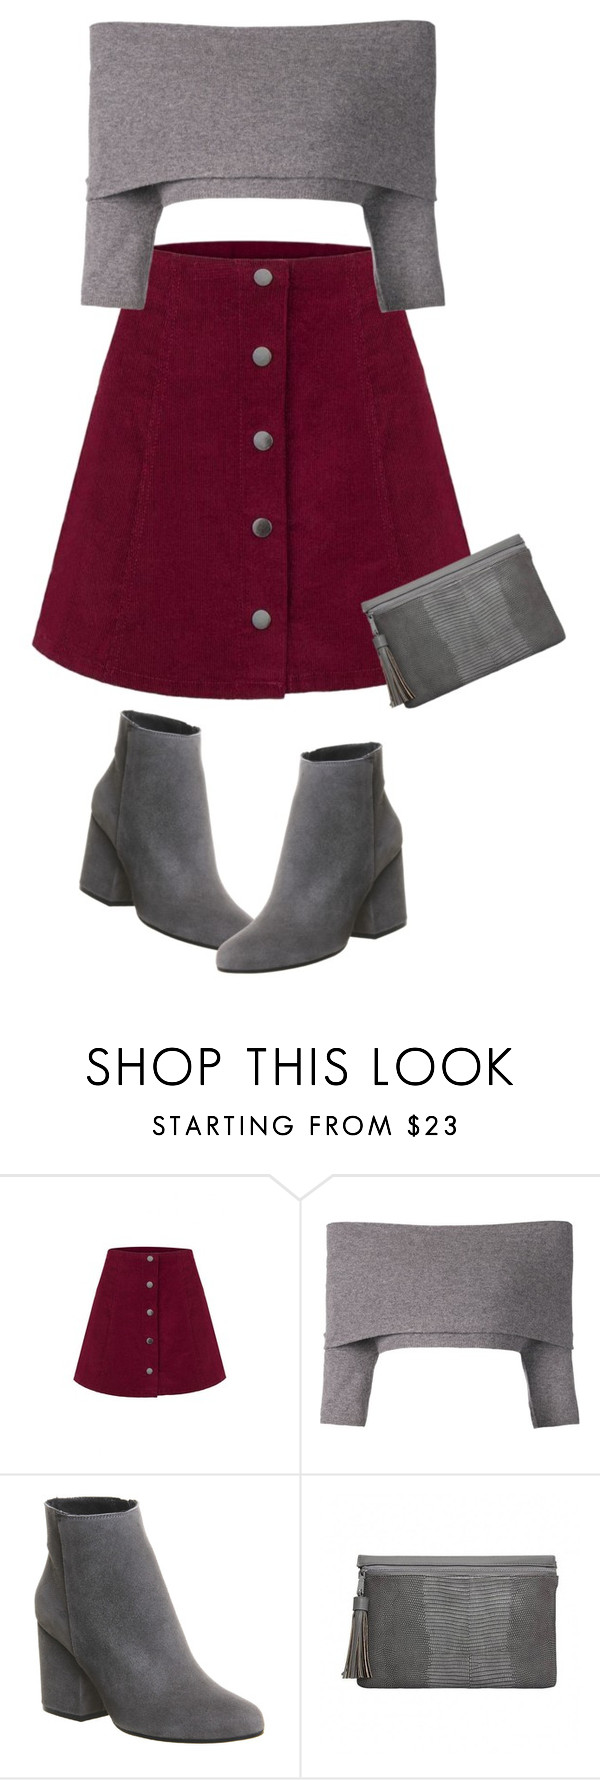 """Untitled #242"" by alexa7-p ❤ liked on Polyvore featuring Dorothee Schumacher and Office"